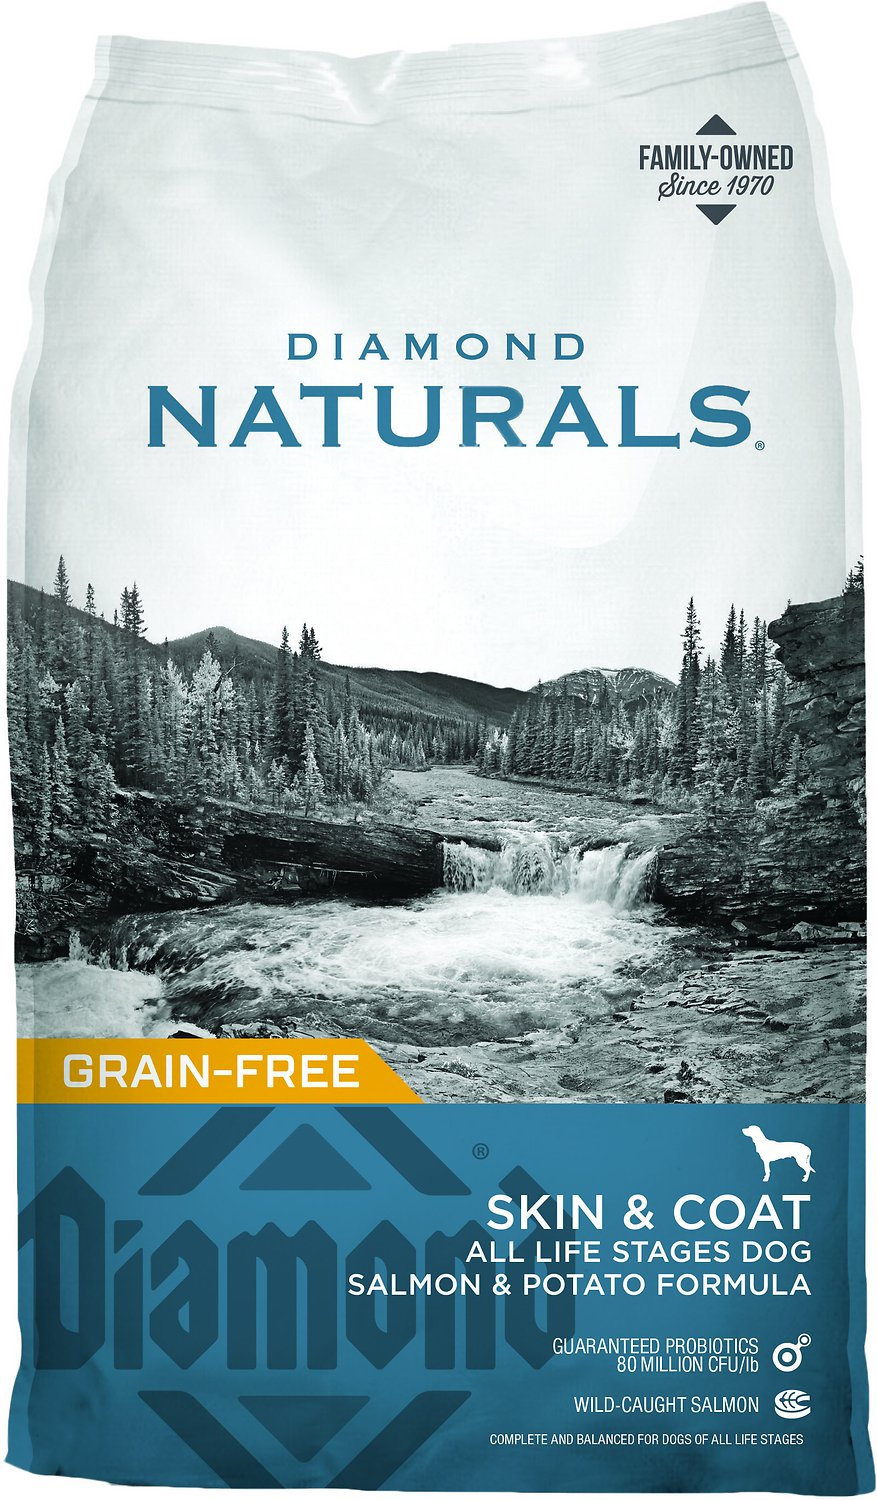 Diamond Naturals Skin & Coat Formula All Life Stages Grain-Free Dry Dog Food Image